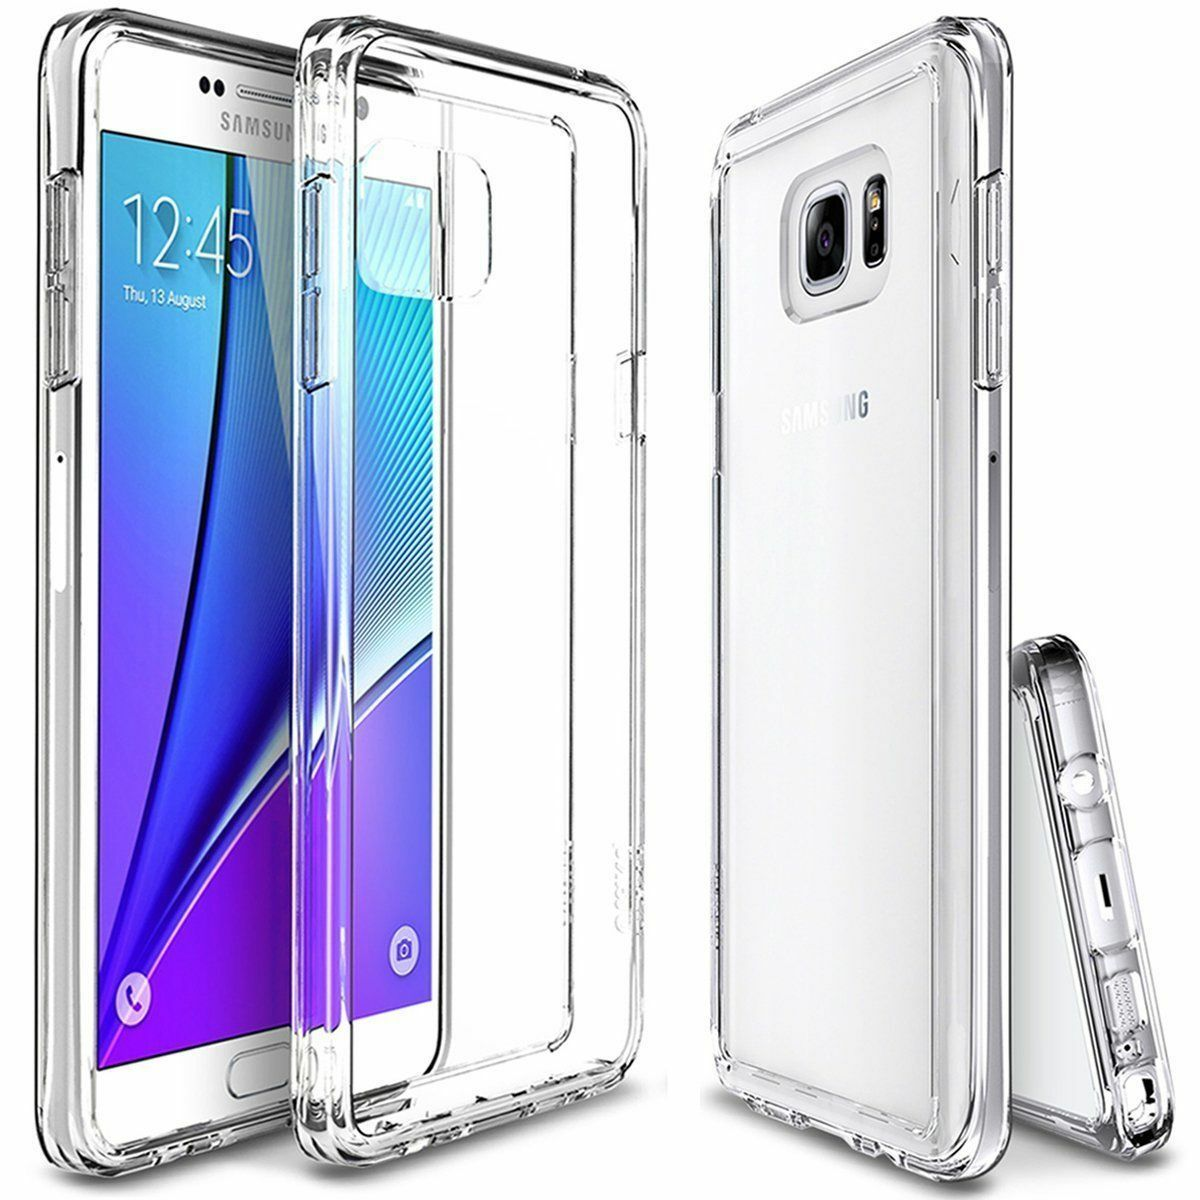 Fits Samsung Galaxy Note 9 8 4 5 S6 S7 S8 S9 Plus Edge Case Clear Tpu Soft Cover -   10 - Fits Samsung Galaxy Note 9 8 4 5 S6 S7 S8 S9 Plus Edge Case Clear Tpu Soft Cover